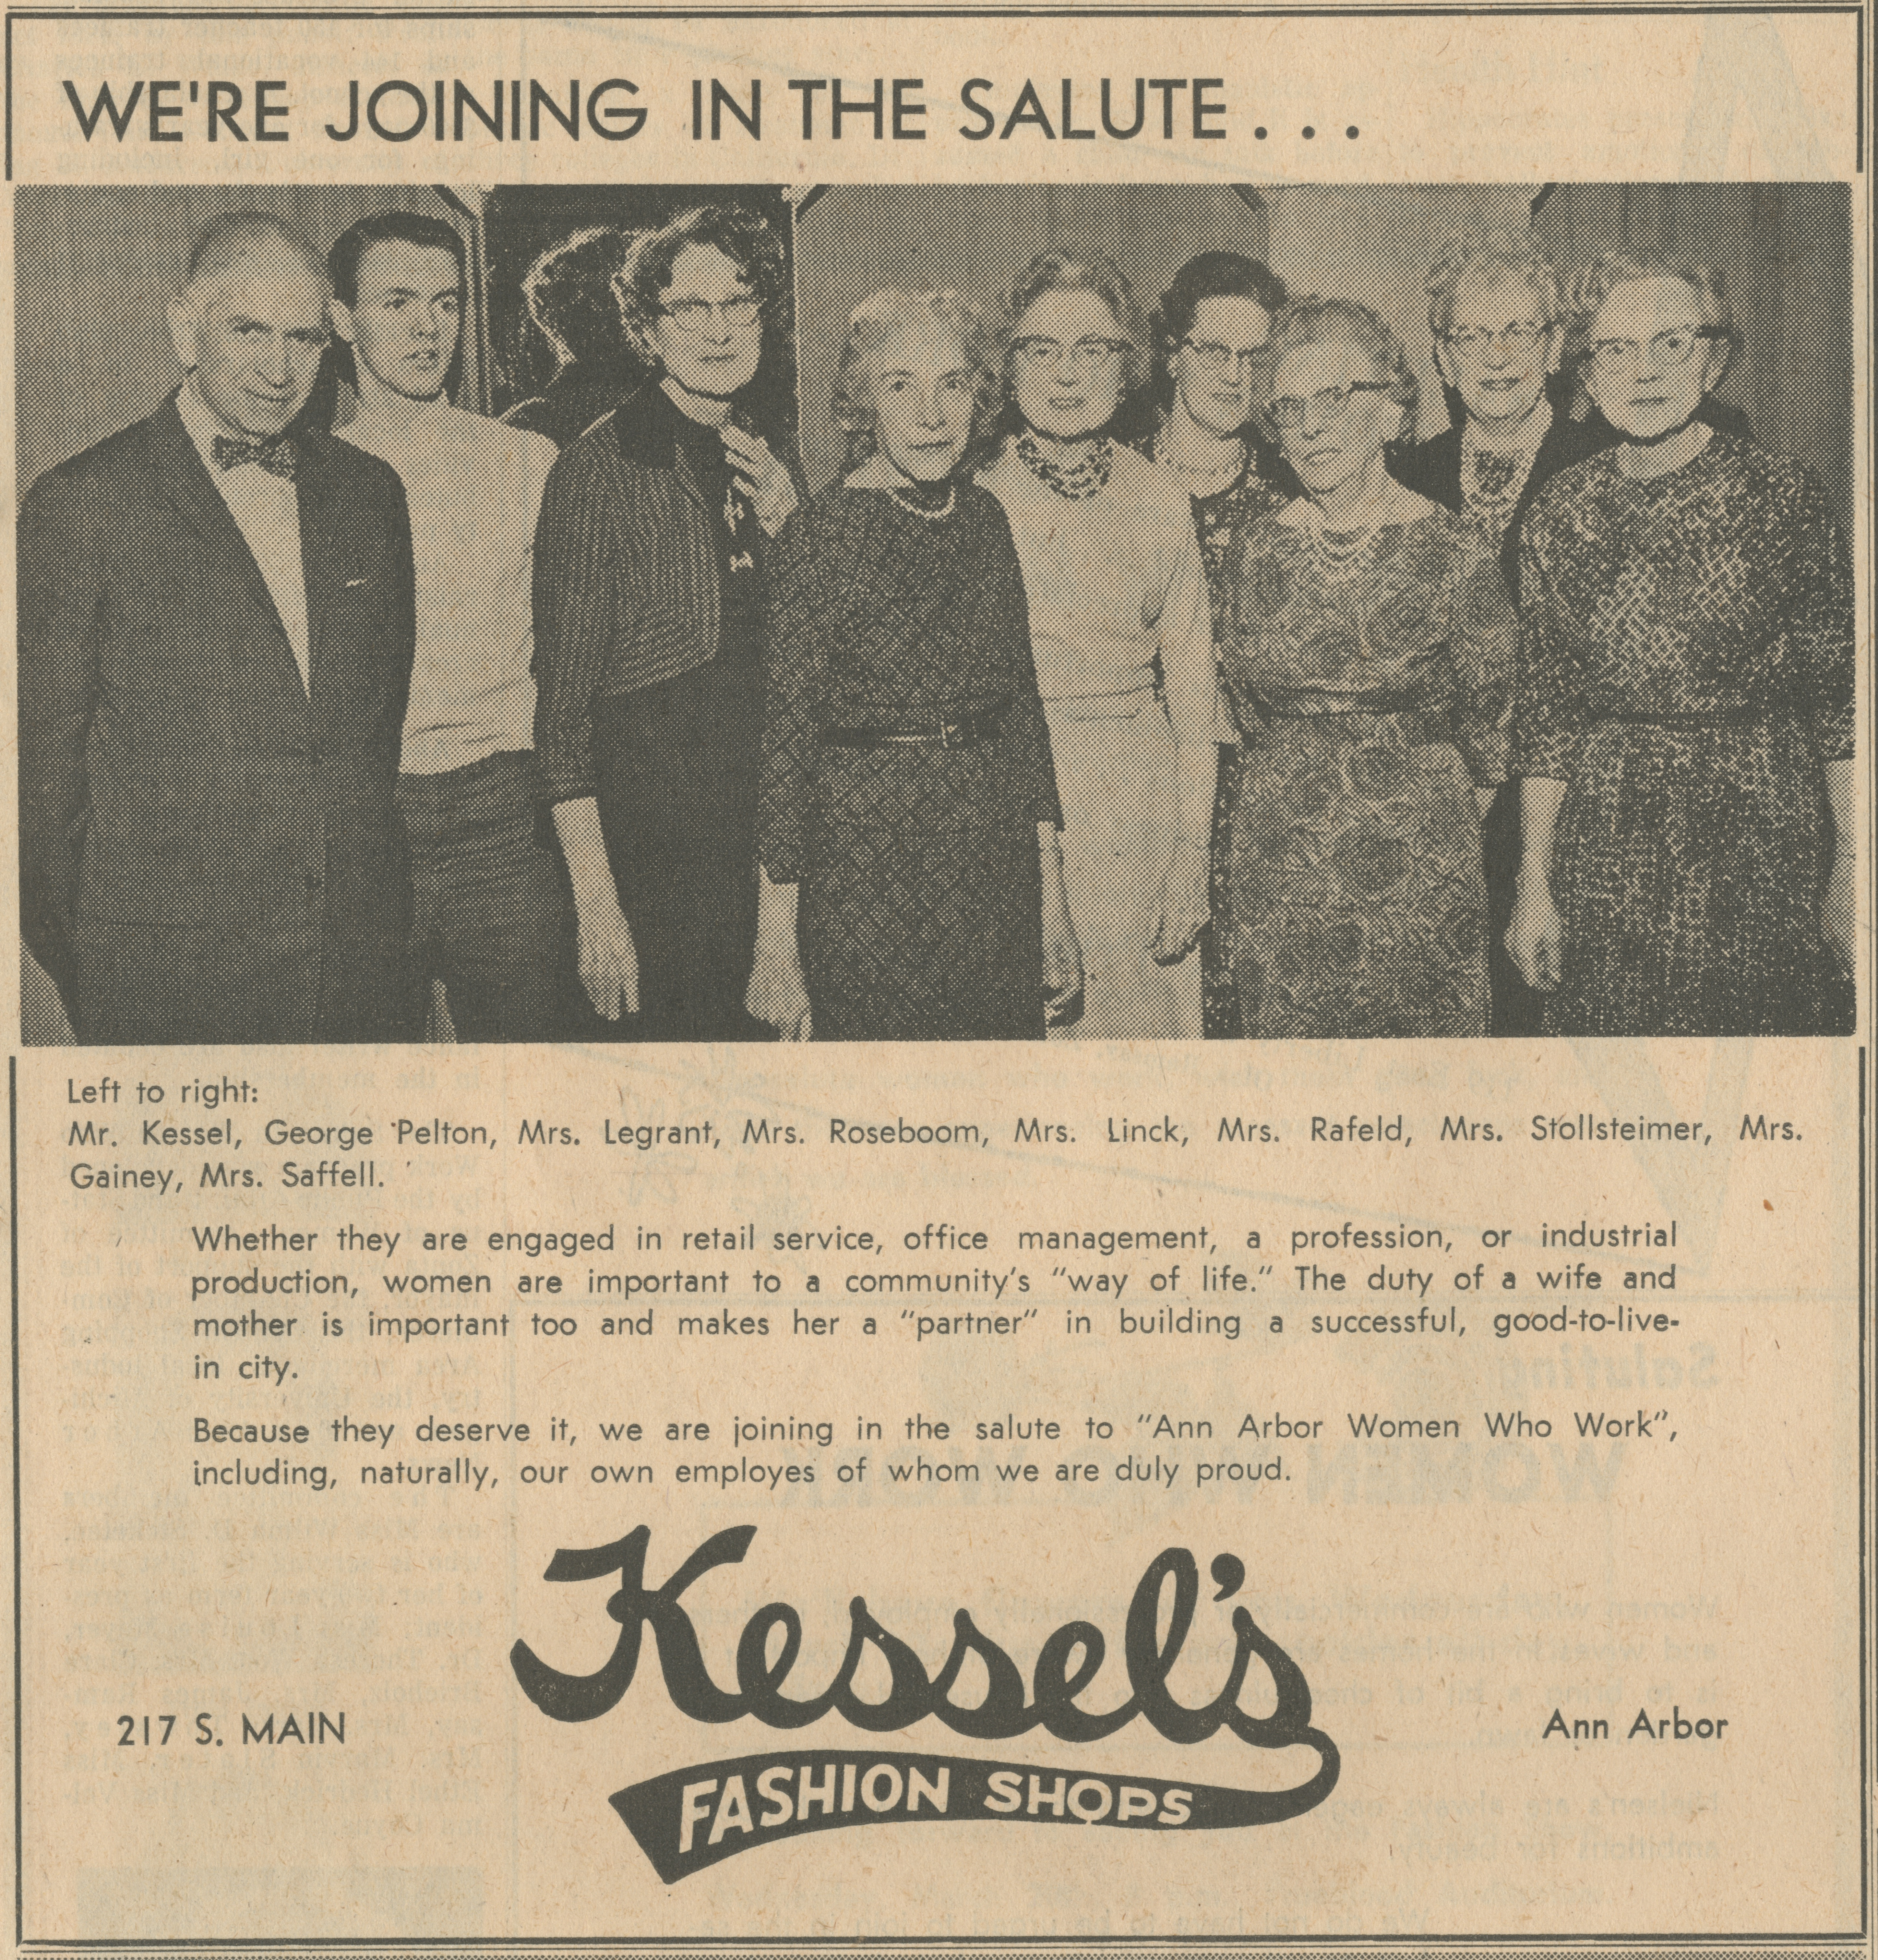 Kessel's Fashion Shops [advertisement] image